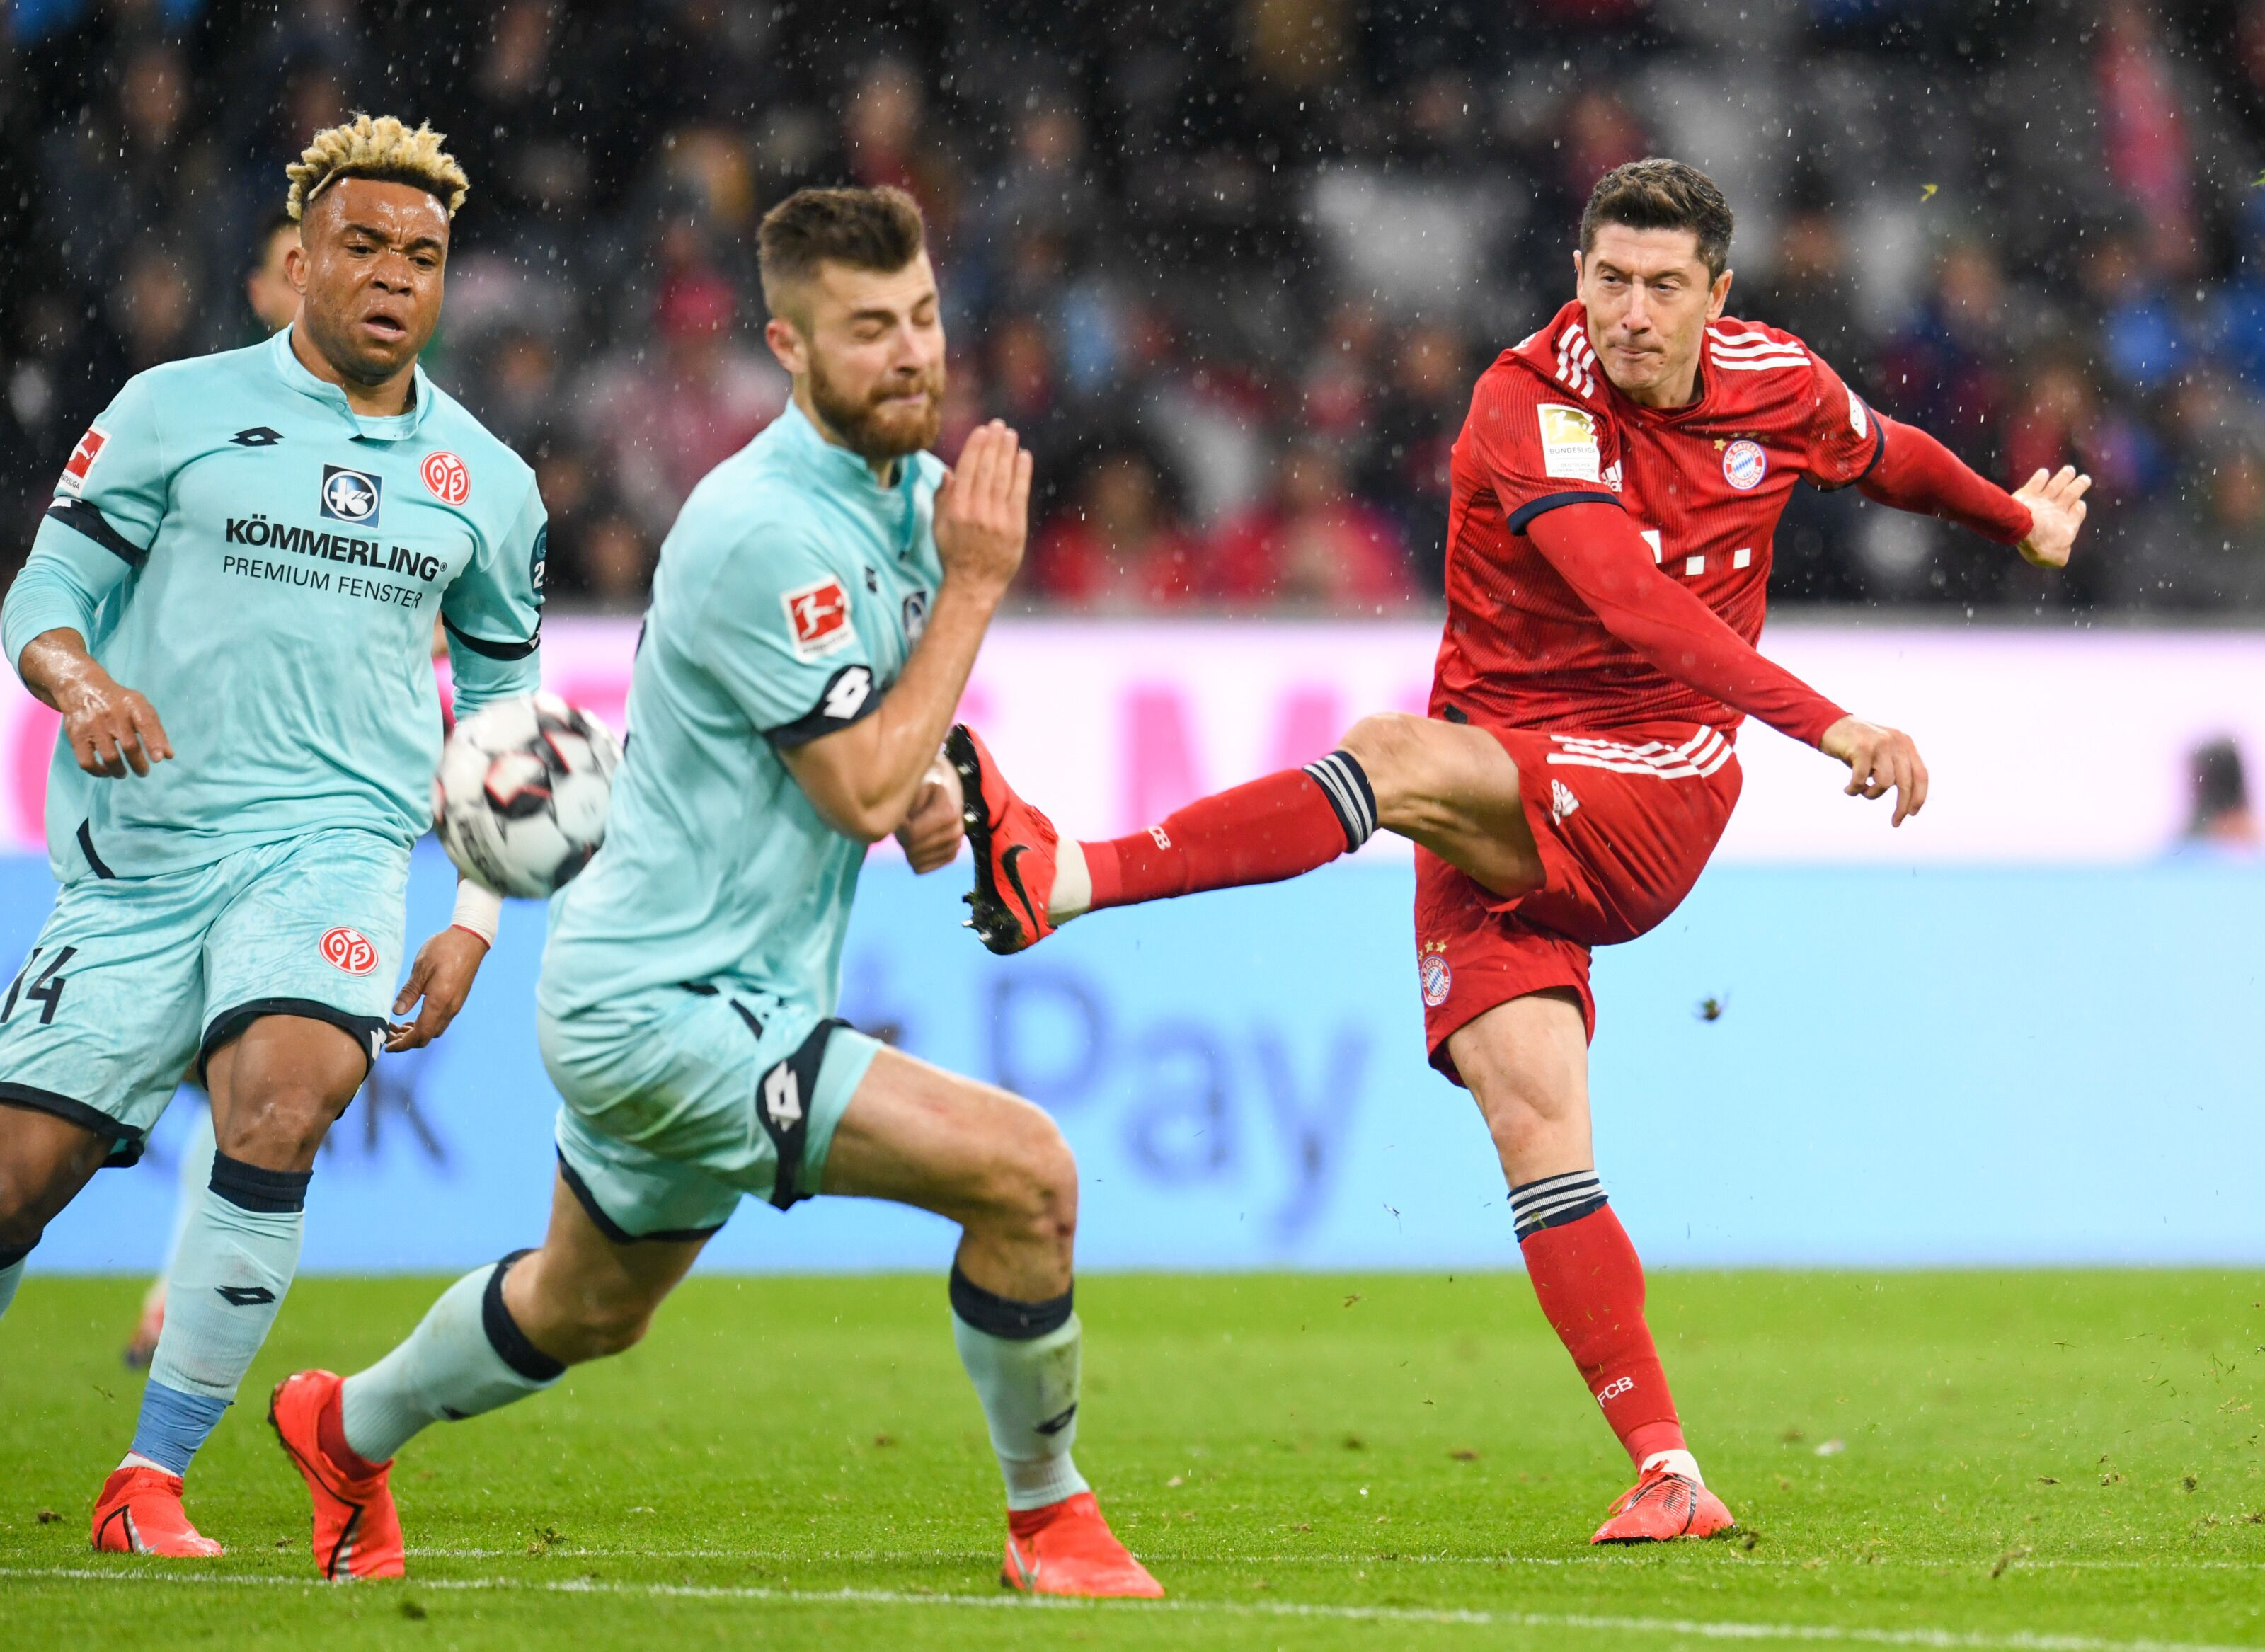 Bayern Munich host Mainz in gameweek three of the Bundesliga